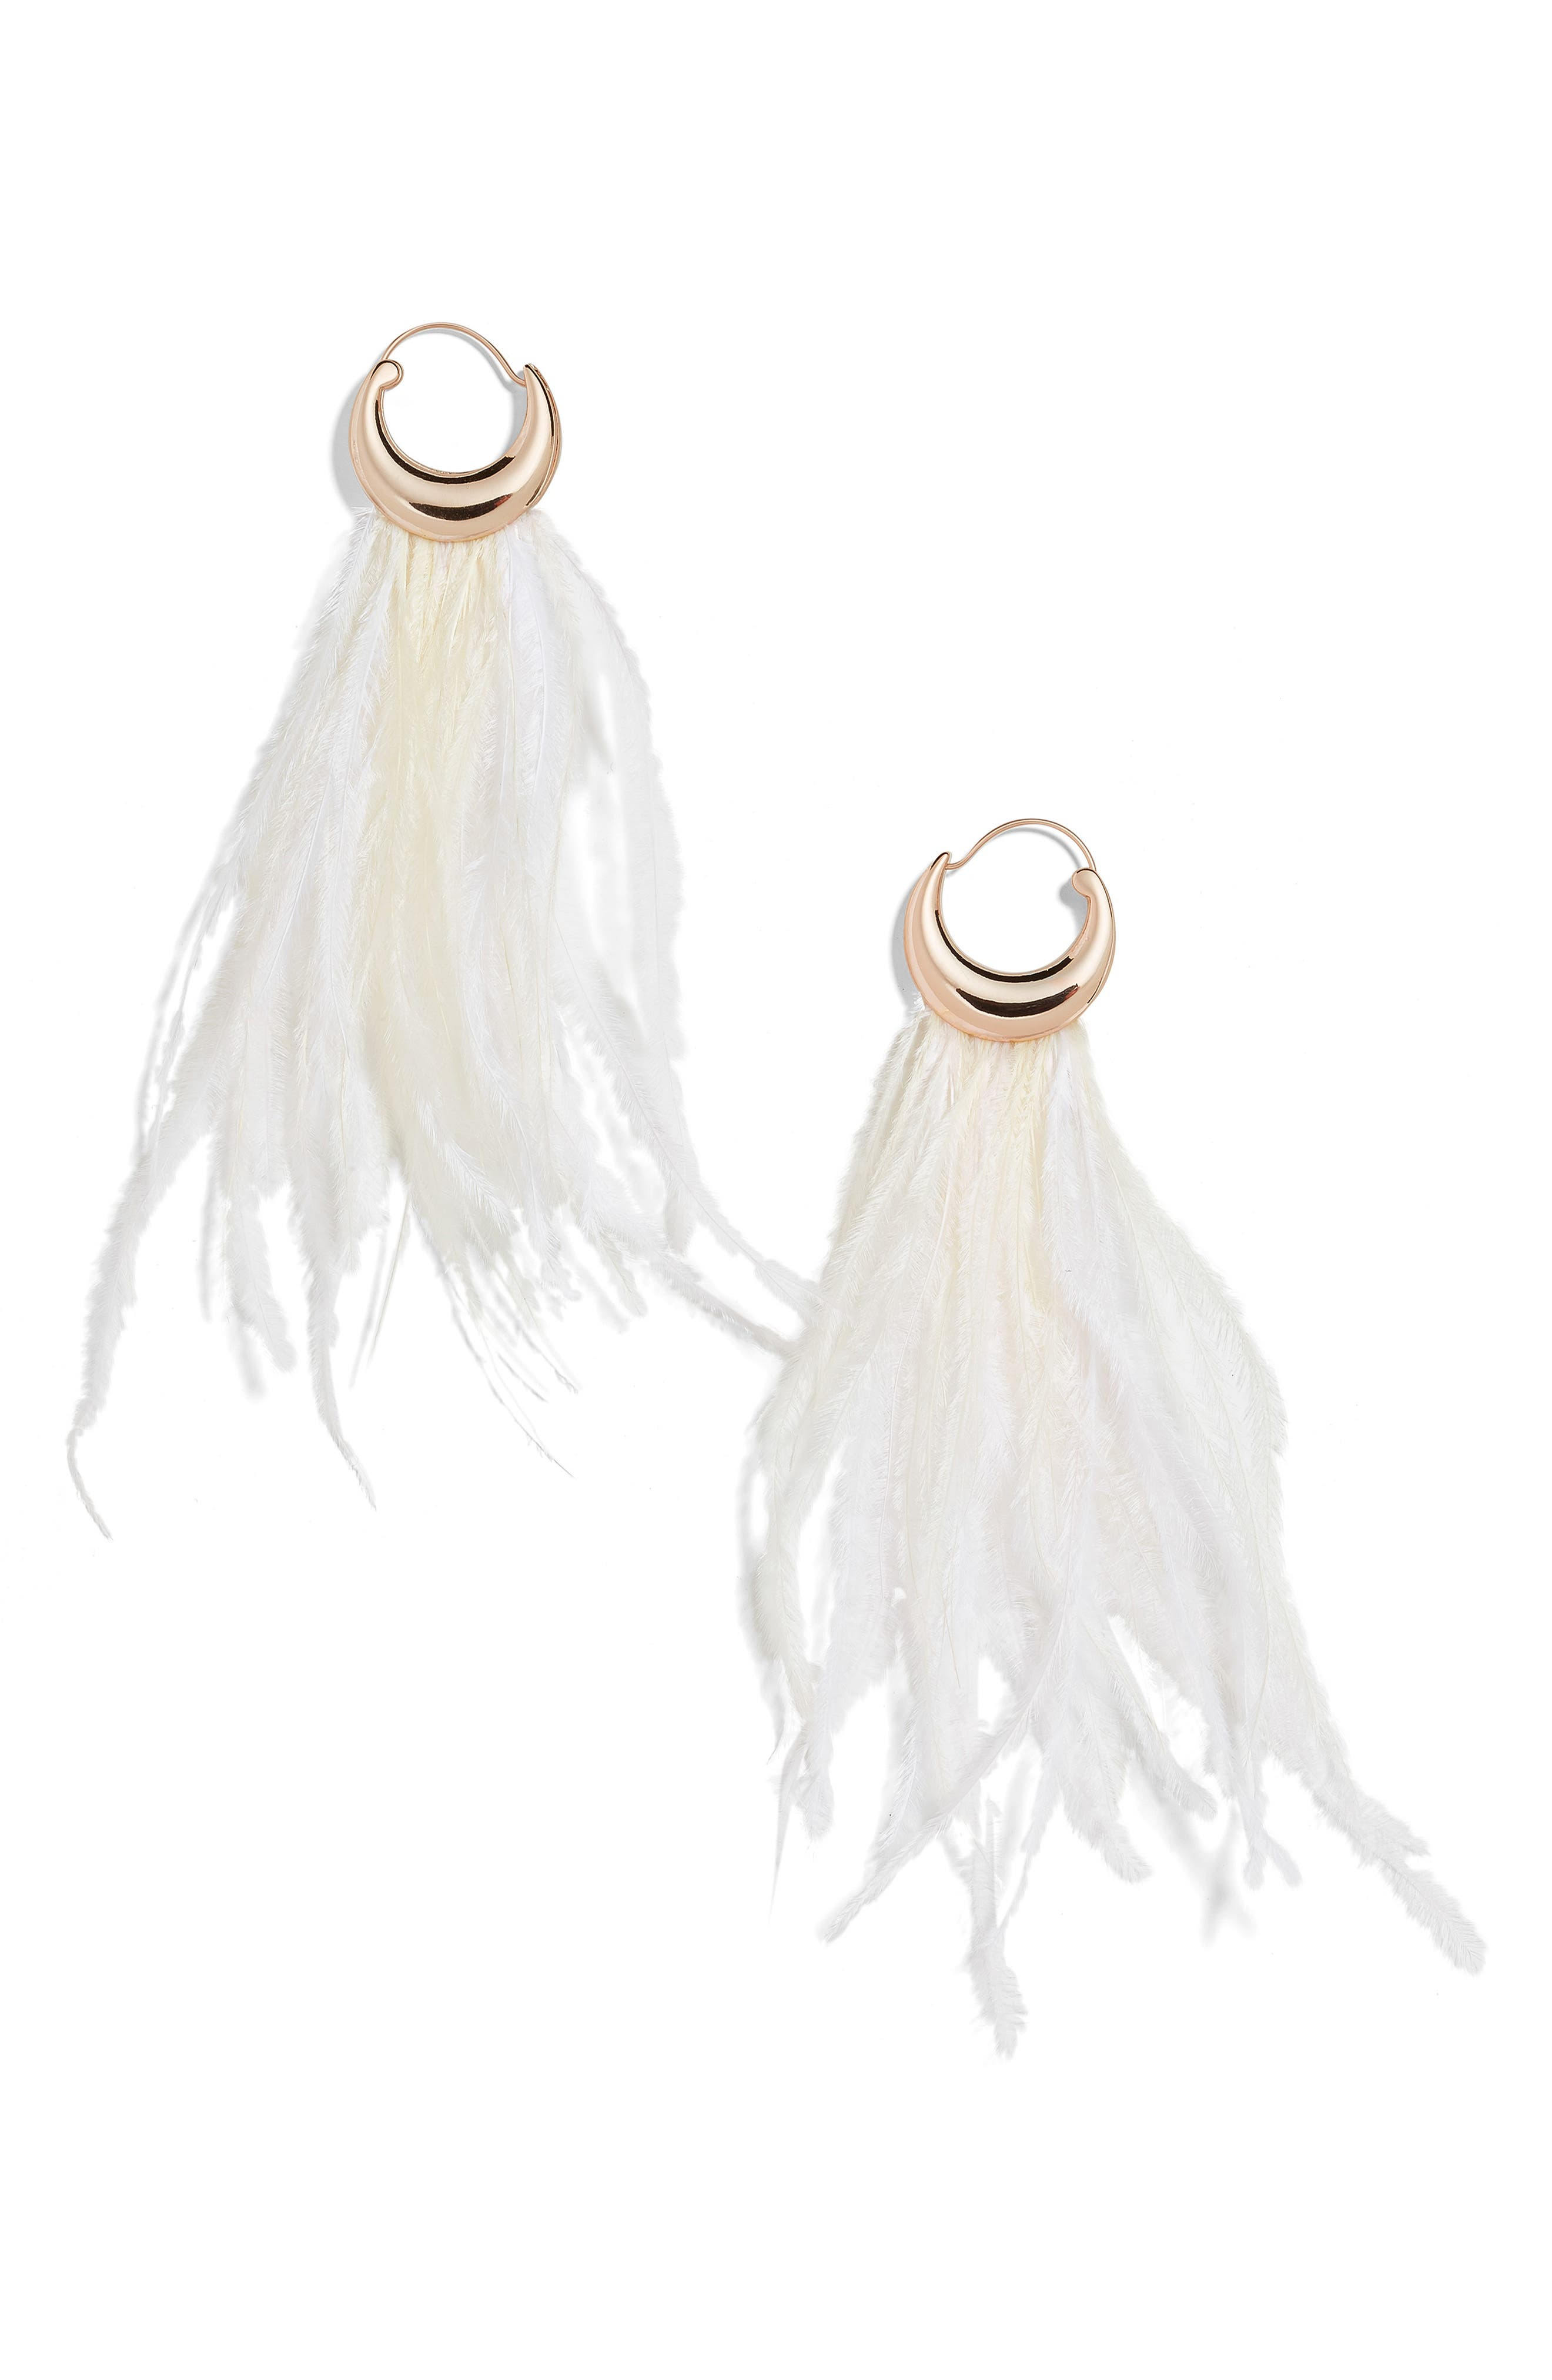 BAUBLEBAR Charla Feather Drop Earrings, Main, color, IVORY/ BLUSH